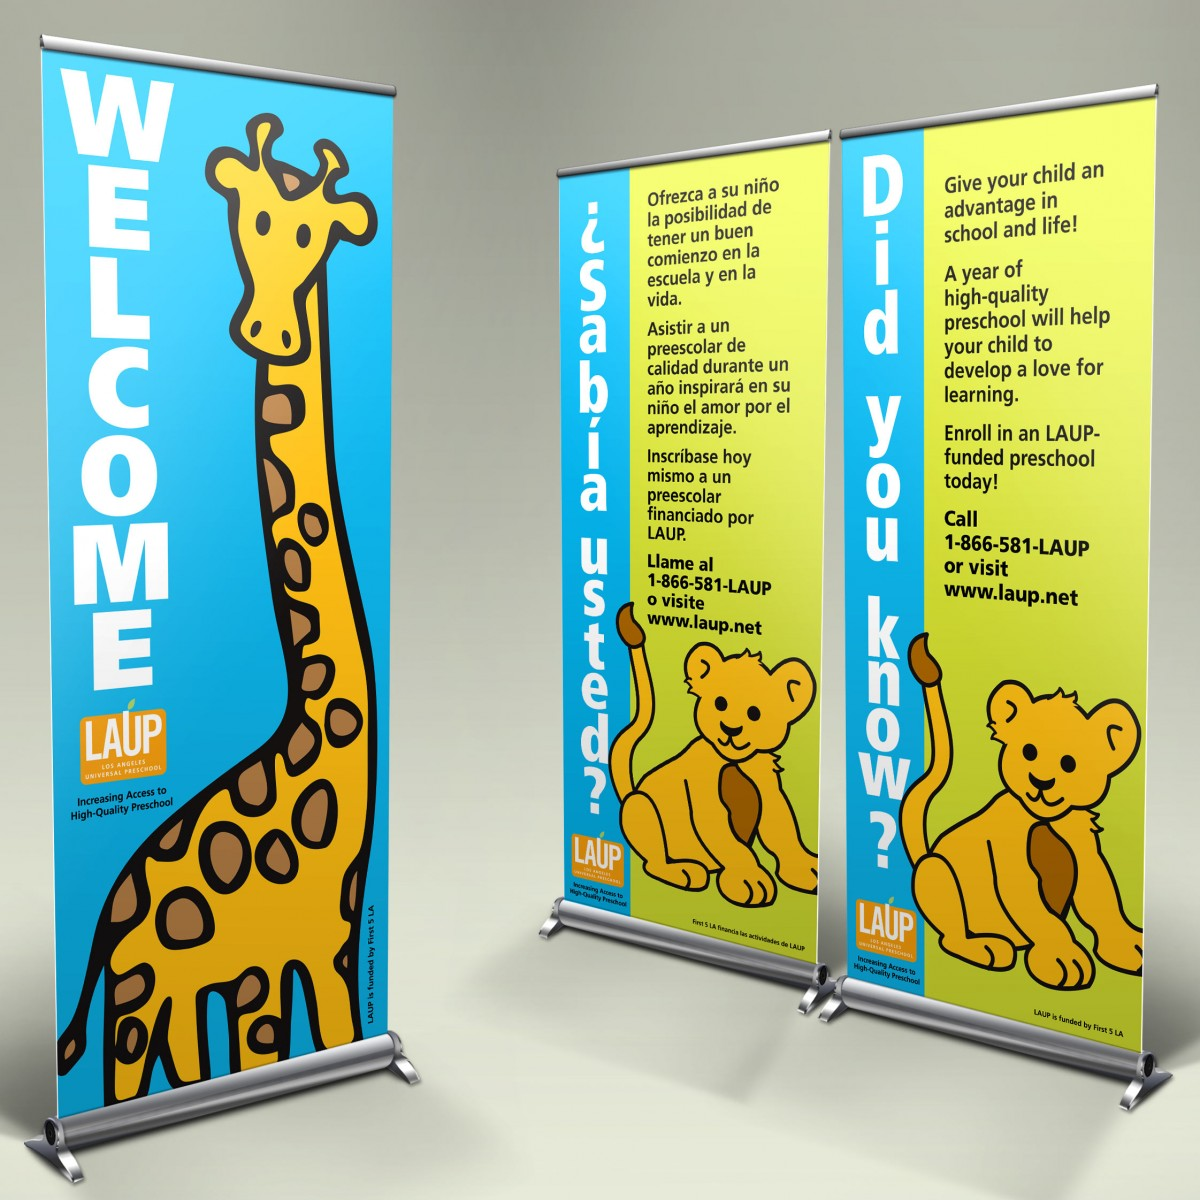 Los Angeles Universal Preschool welcome banners